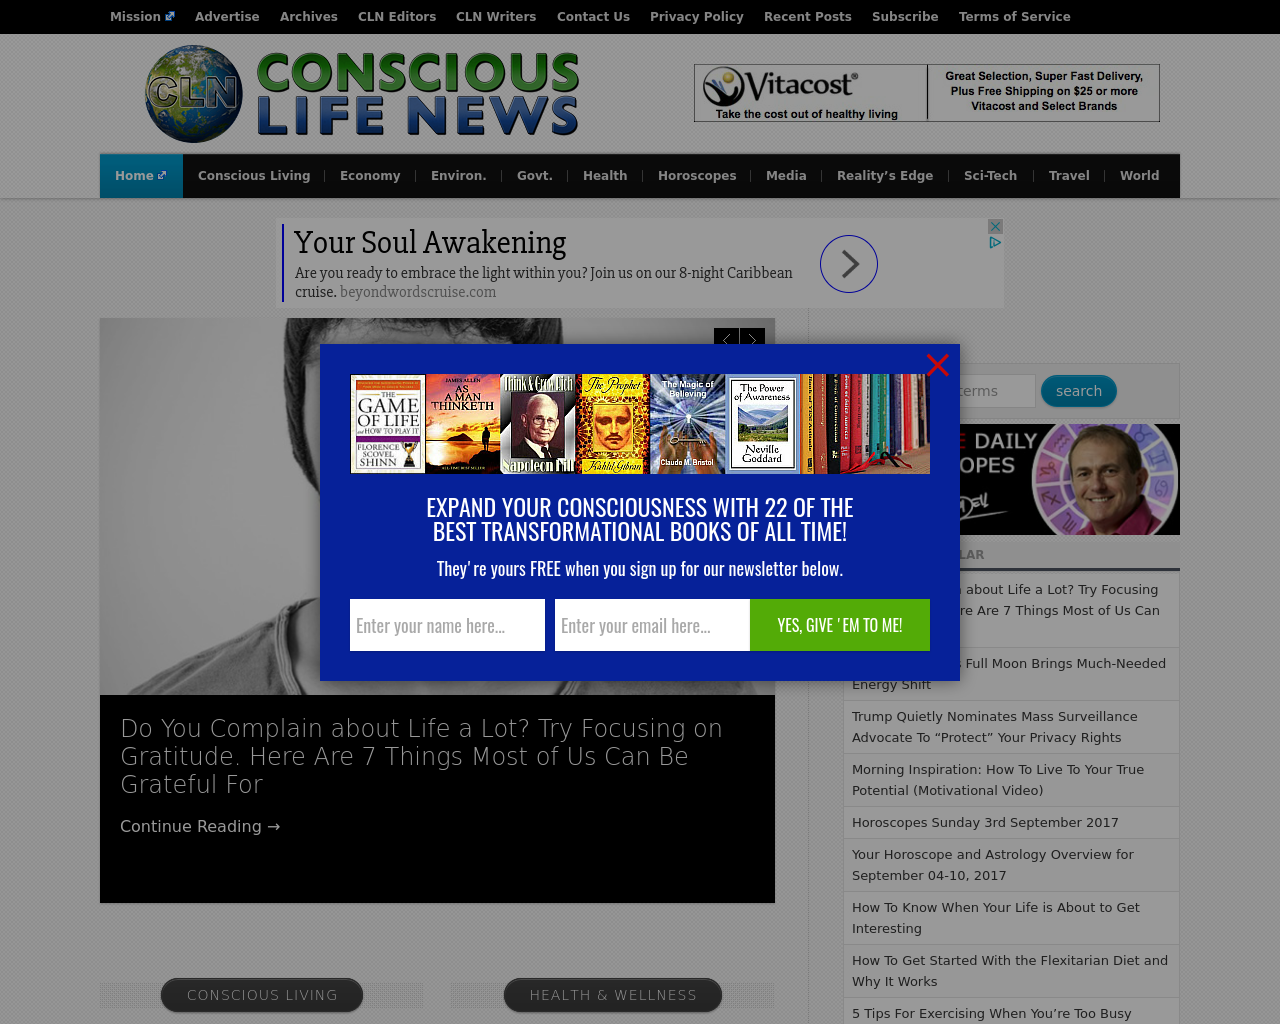 Conscious-Life-News-Advertising-Reviews-Pricing